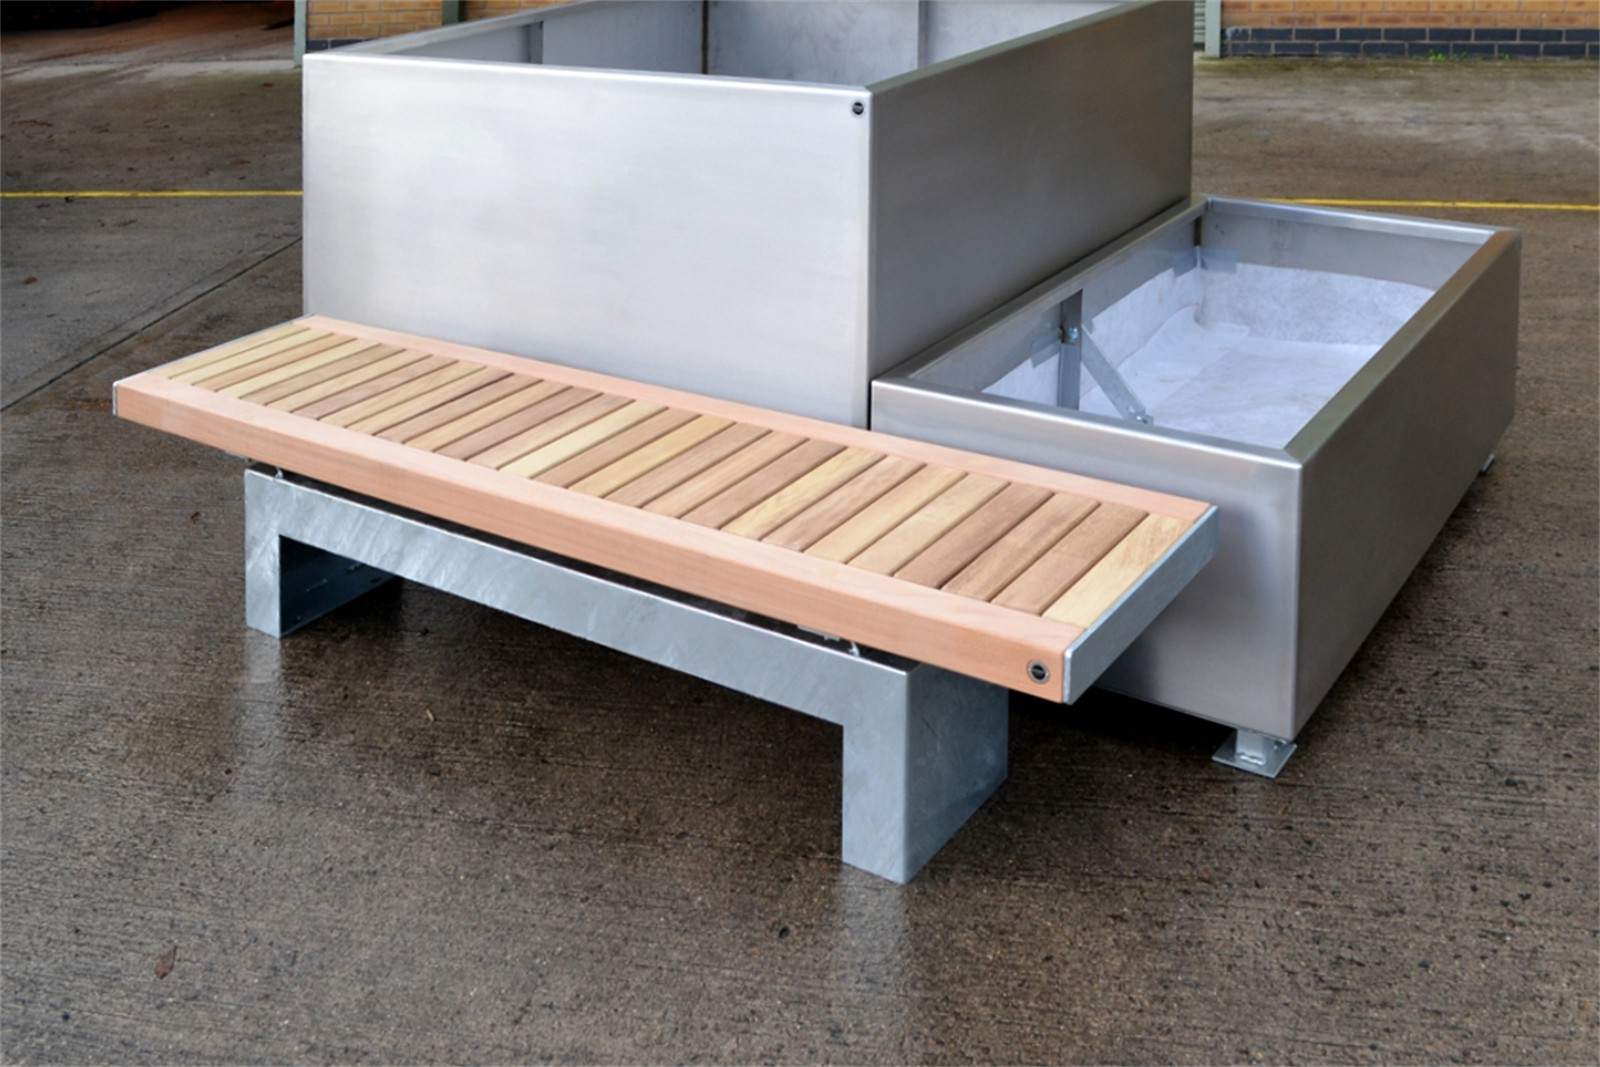 70ssh19 - Sheldon timber and galvanised mild steel bench